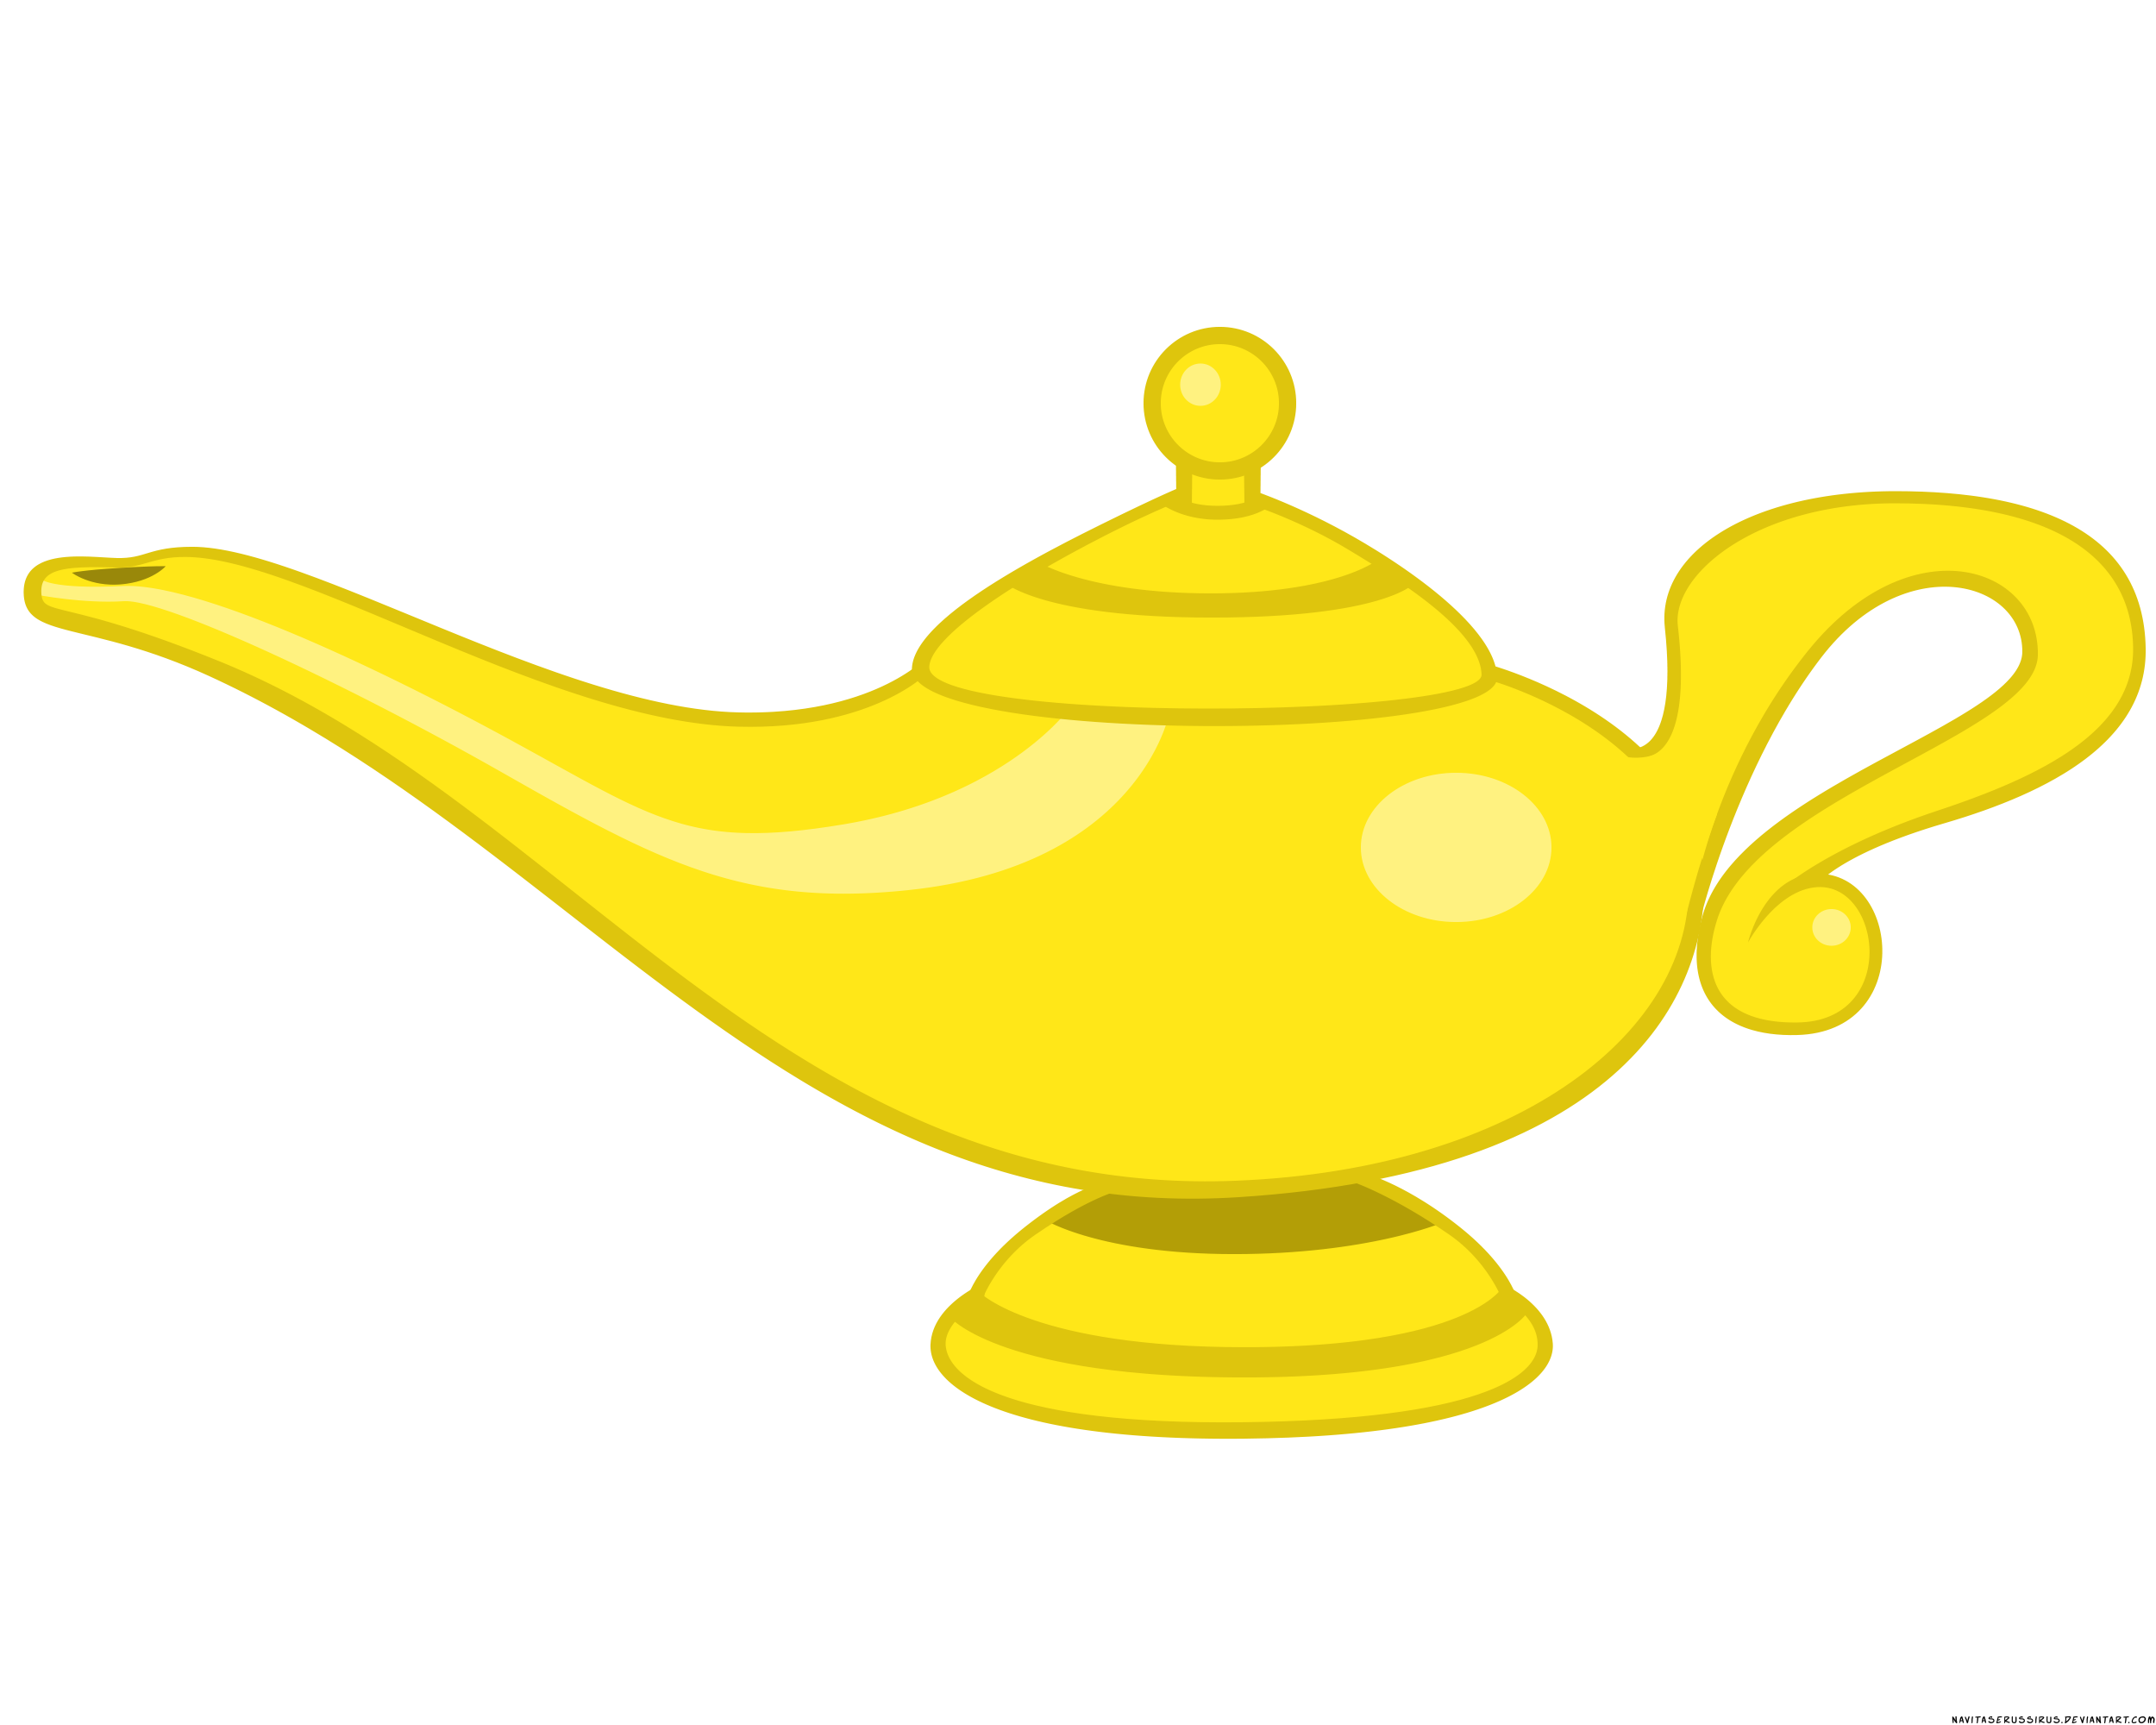 Lamp clipart genie bottle. Genies pict a home